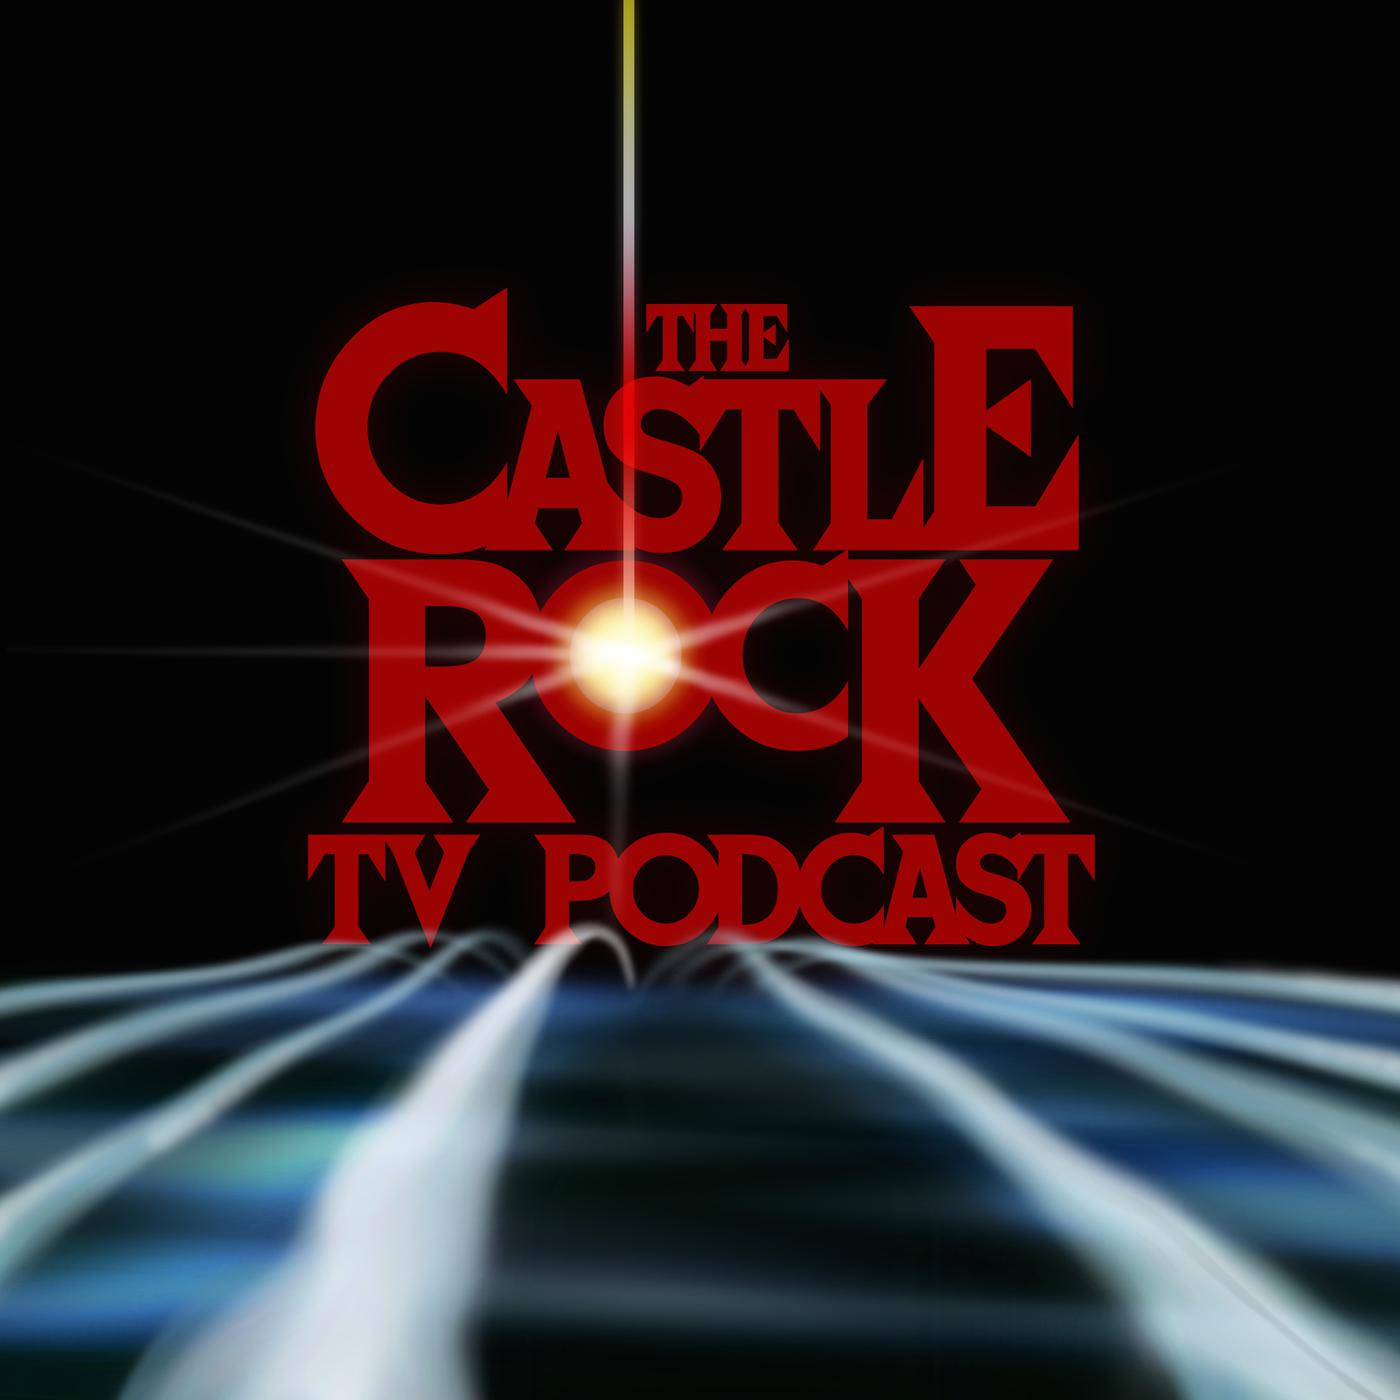 The Castle Rock TV Podcast   A fan podcast for the Hulu